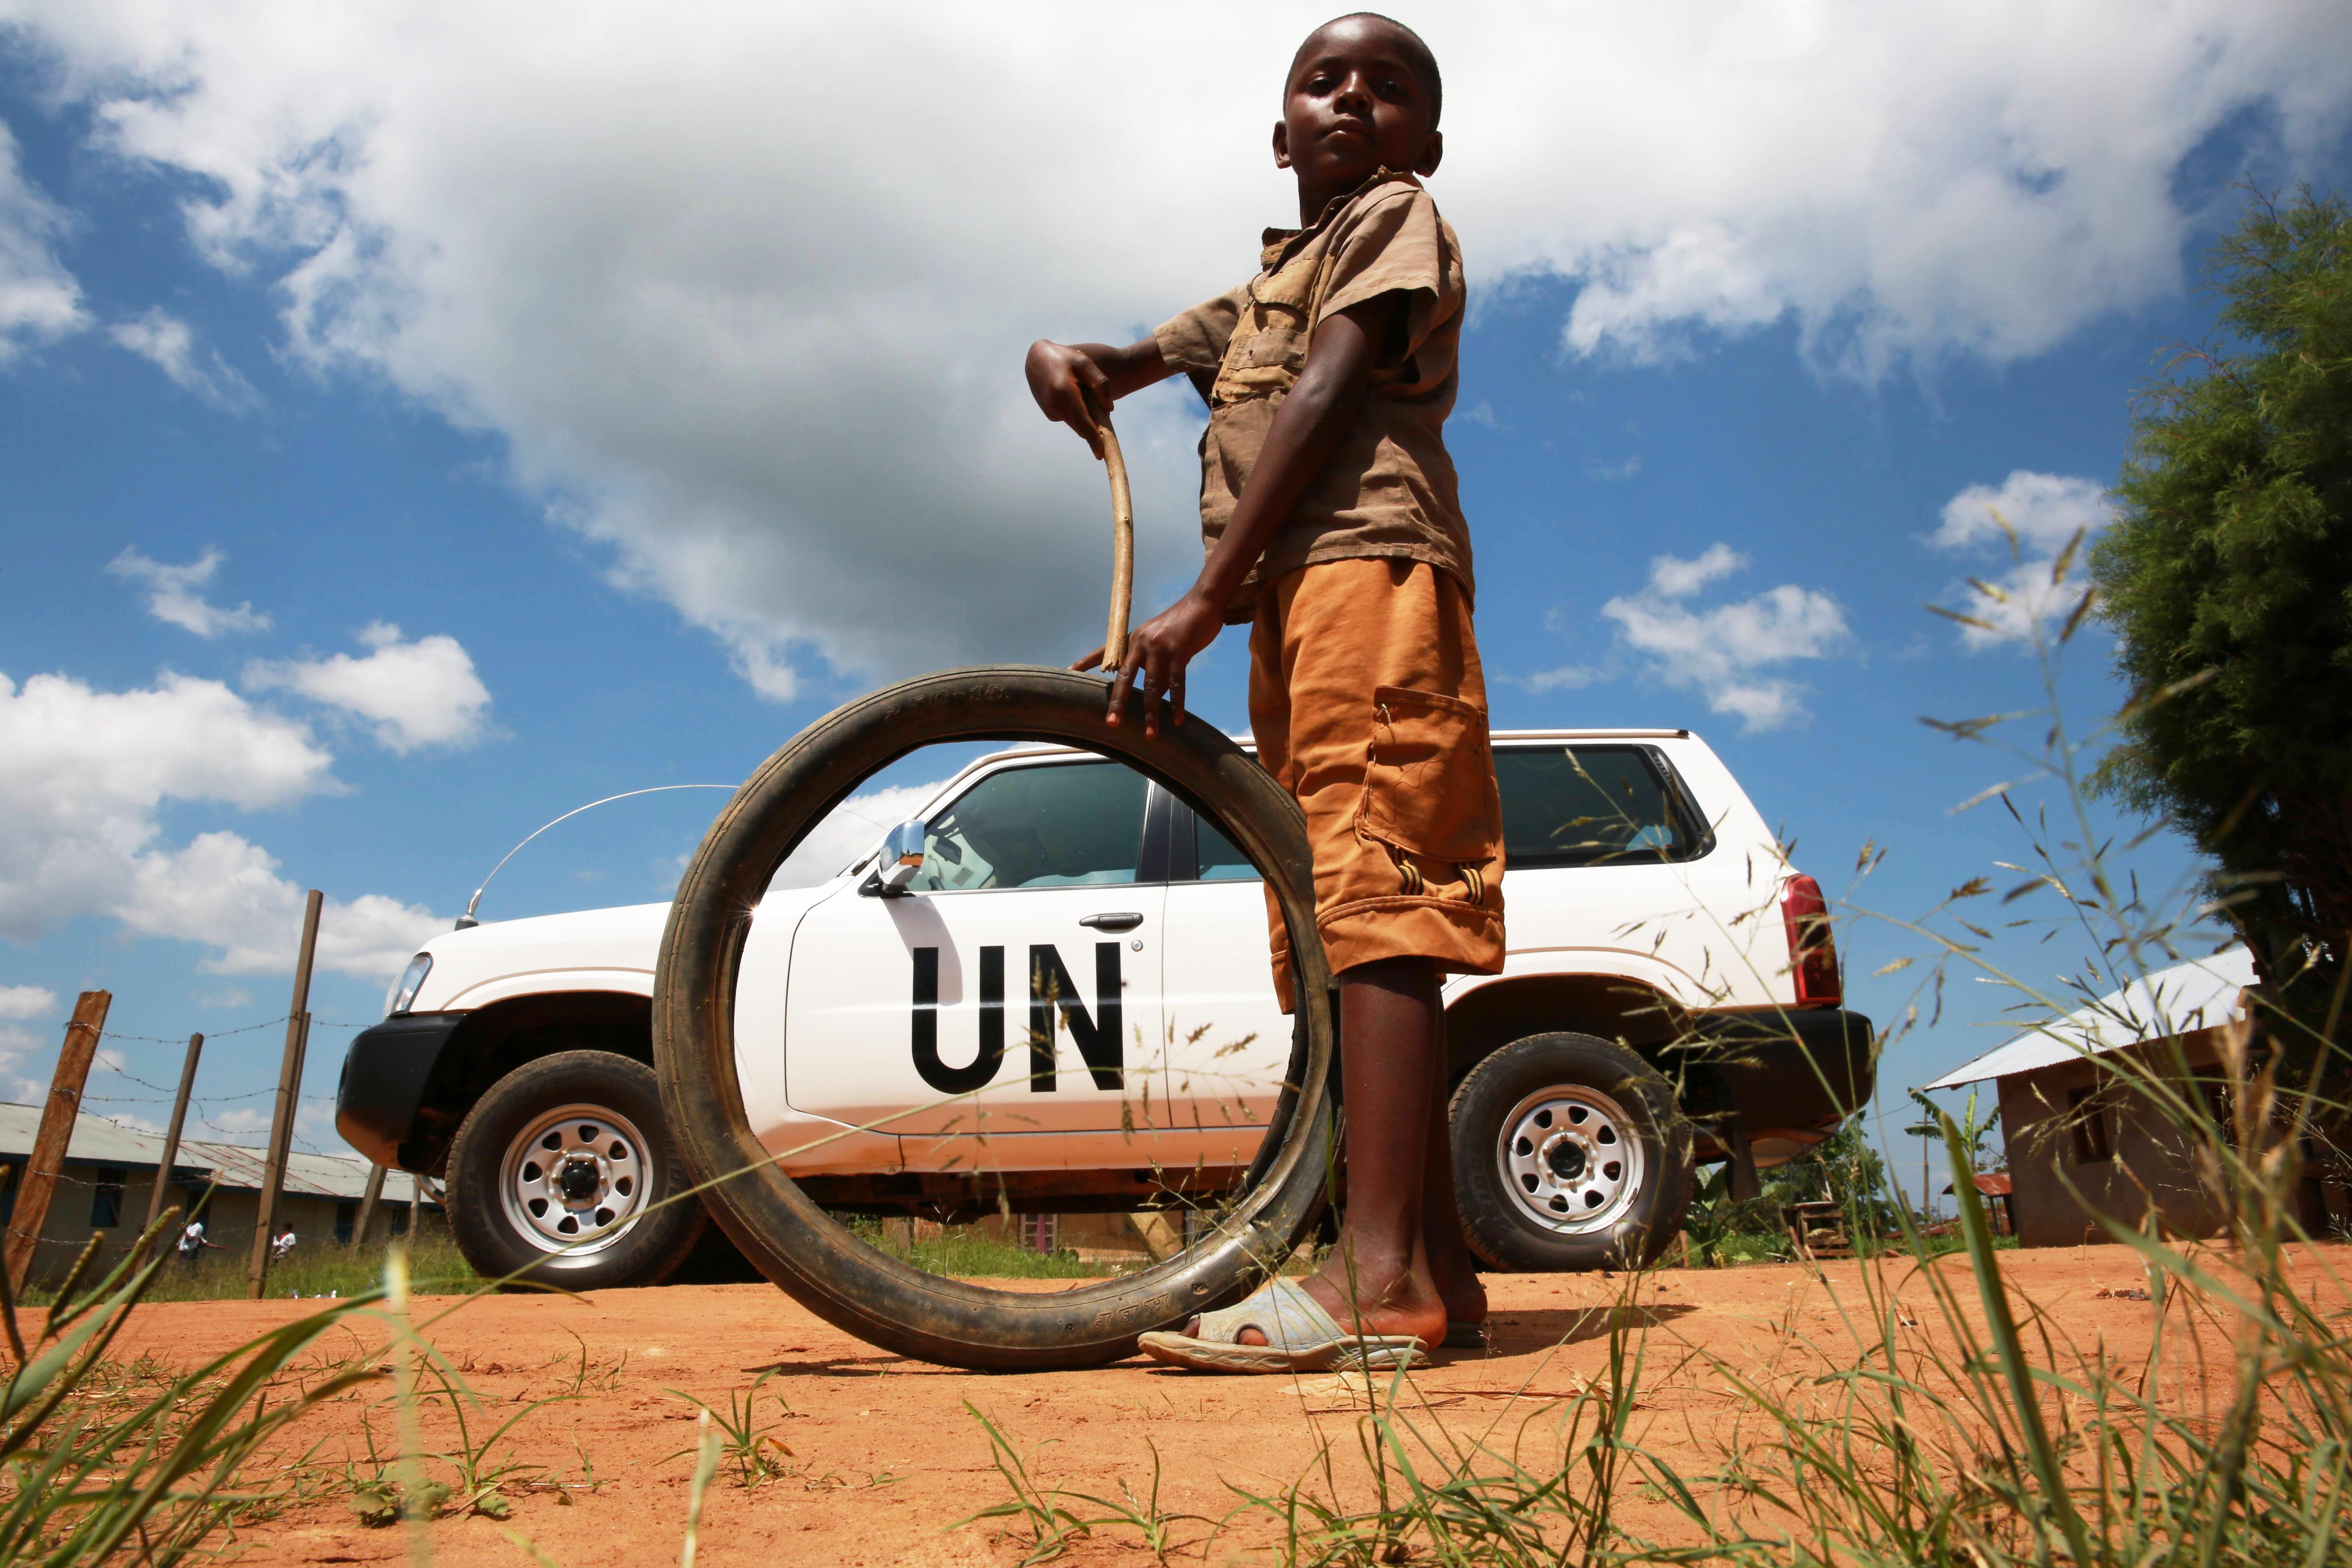 Un peace operations jobs  unique list of the logistics supply chain and procurement rosters included in the soon to be launched recruitment campaign 8a4e153b 63c8 41d1 898e ff5782b22632